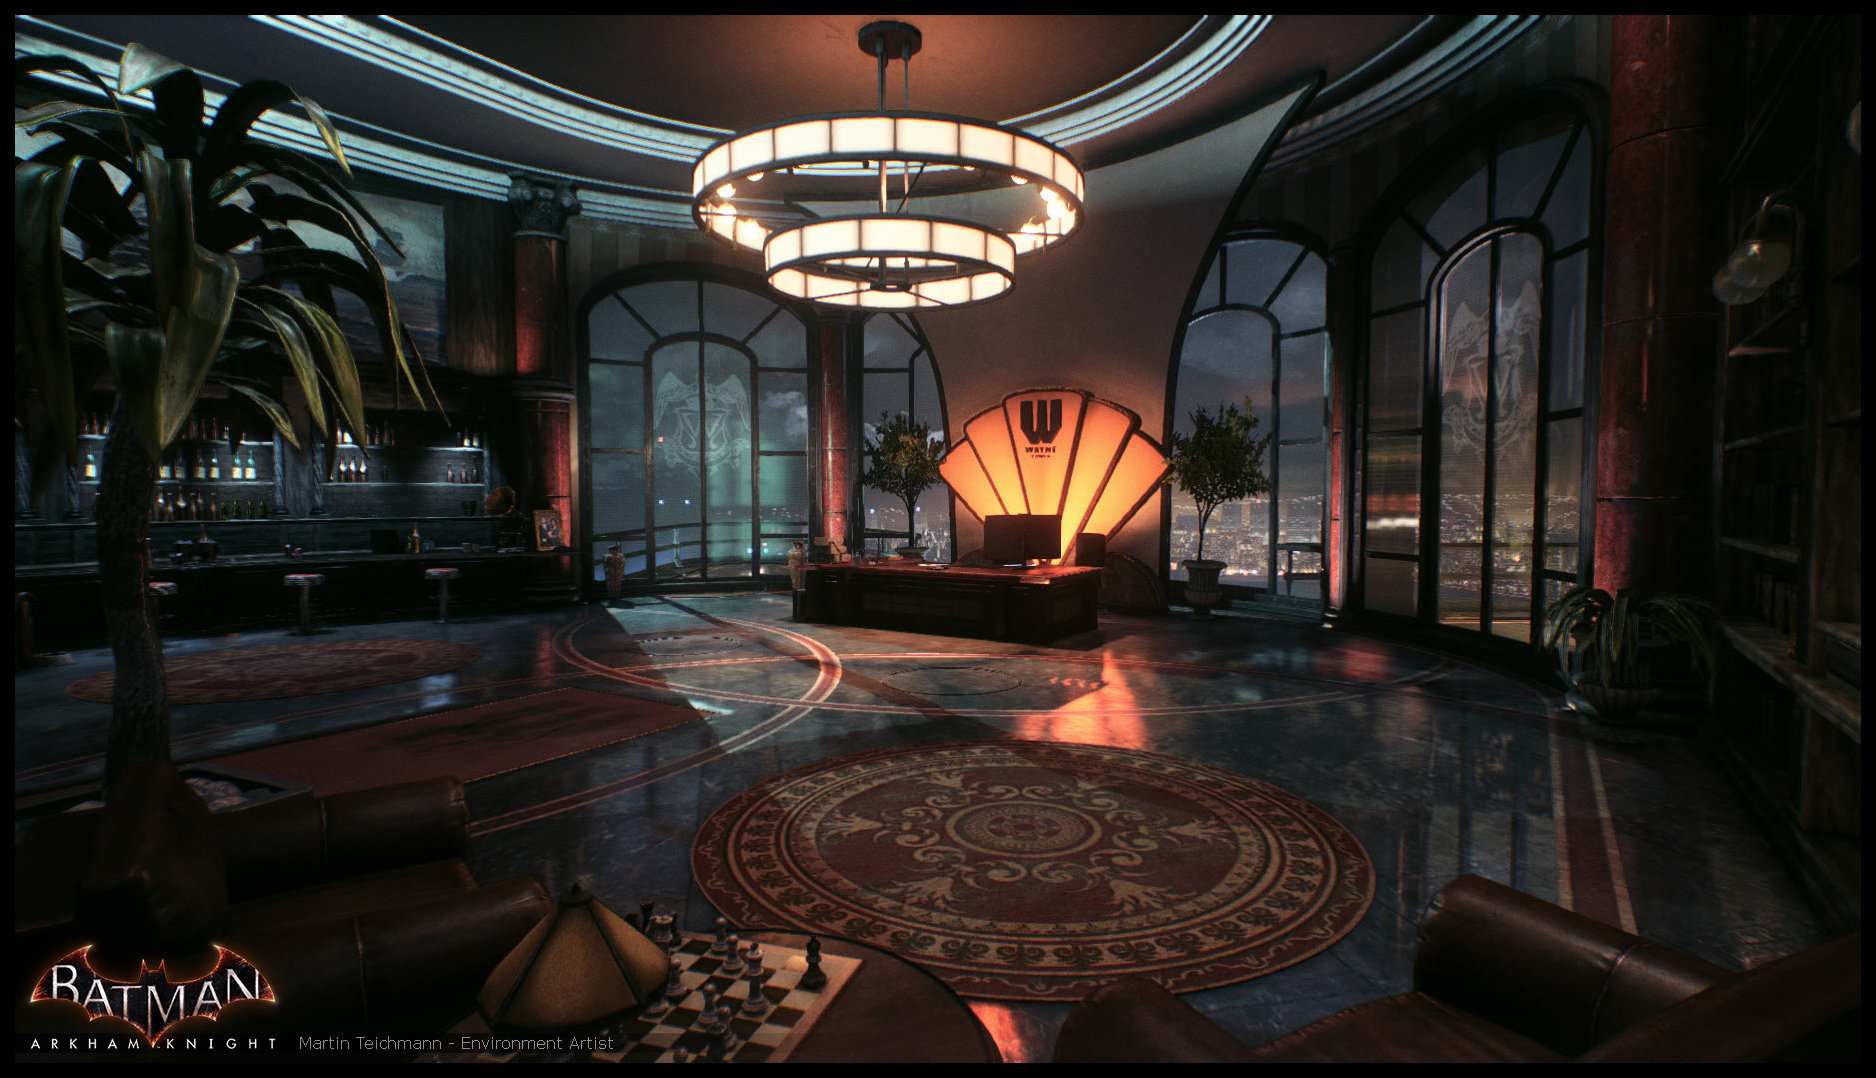 Martin teichmann arkham knight office 03